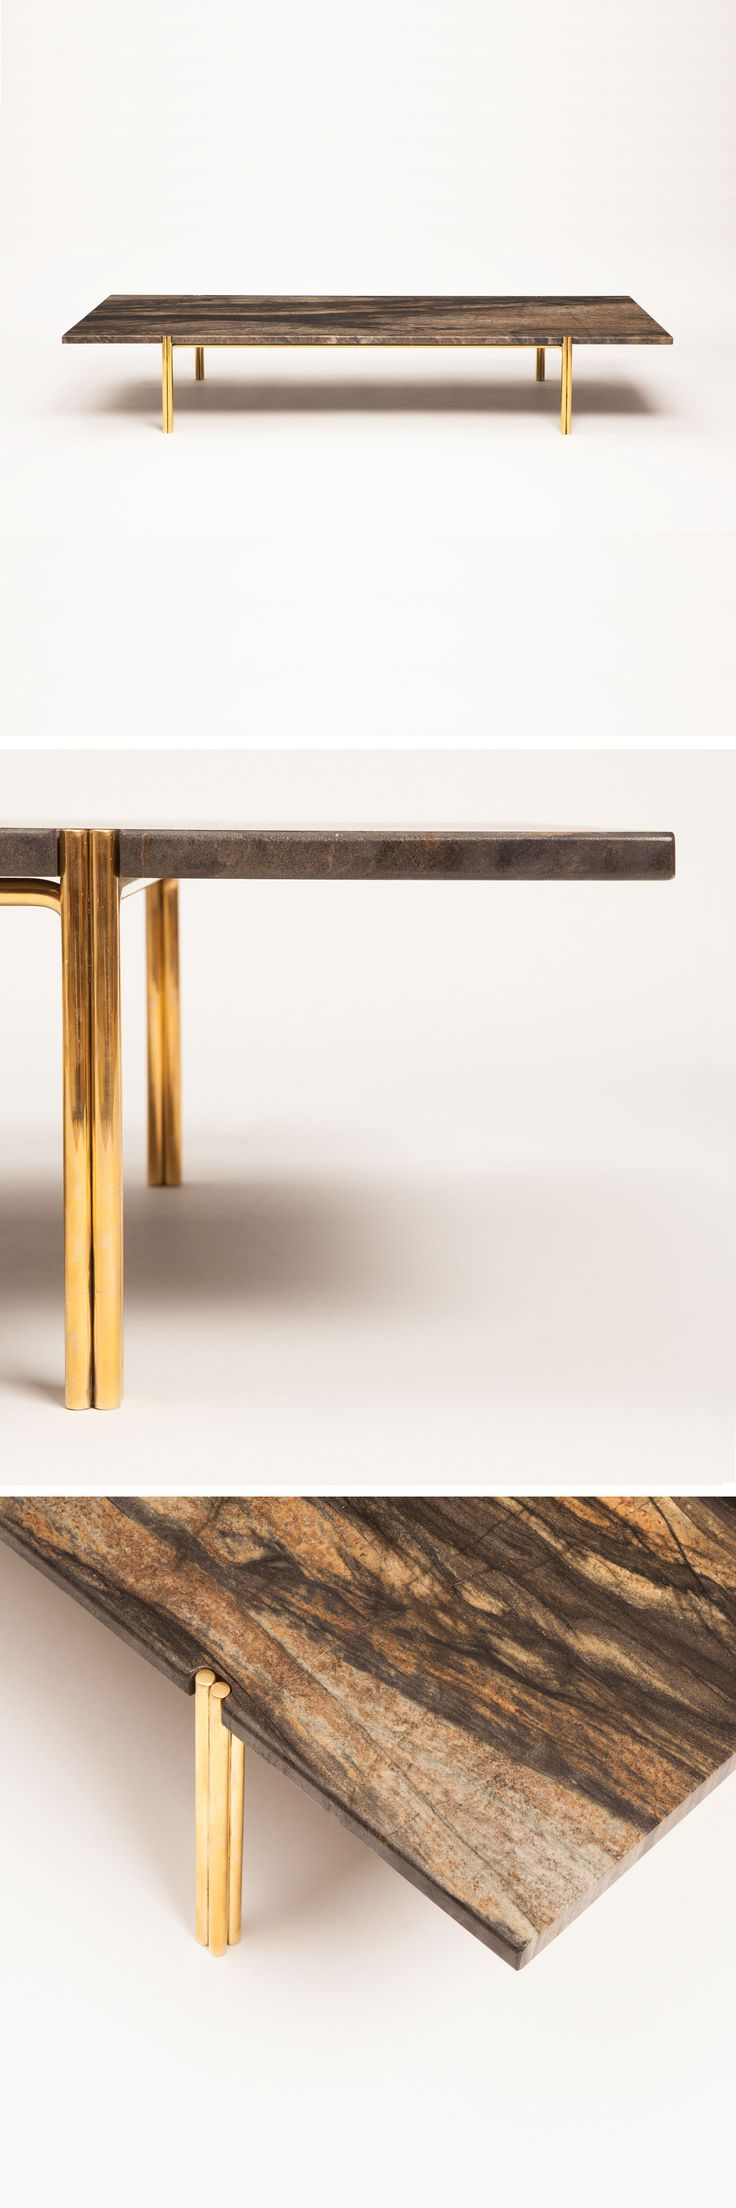 low table - christopher allen